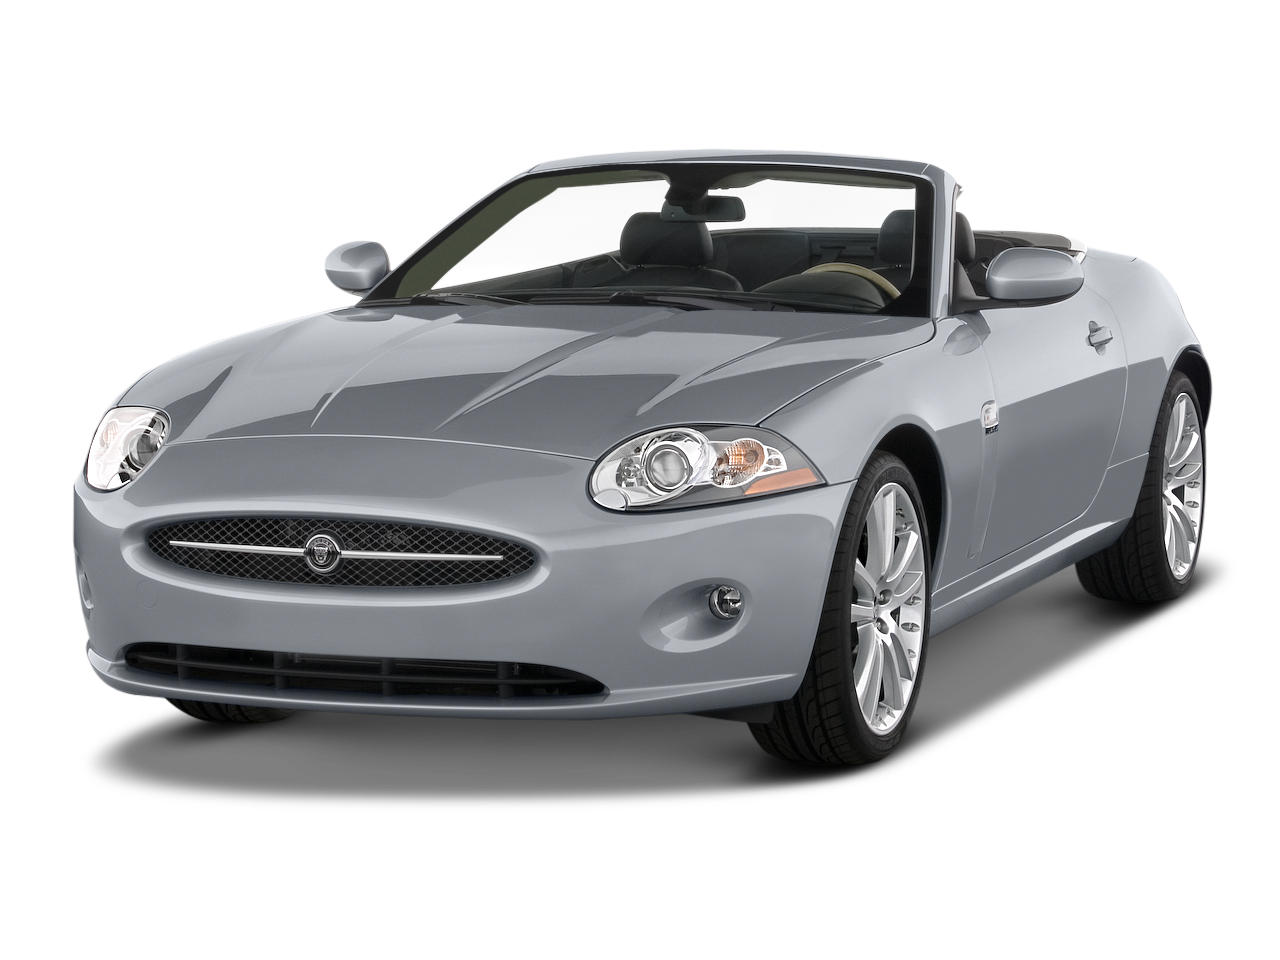 2008 jaguar xkr convertible jaguar luxury convertible review automobile magazine. Black Bedroom Furniture Sets. Home Design Ideas